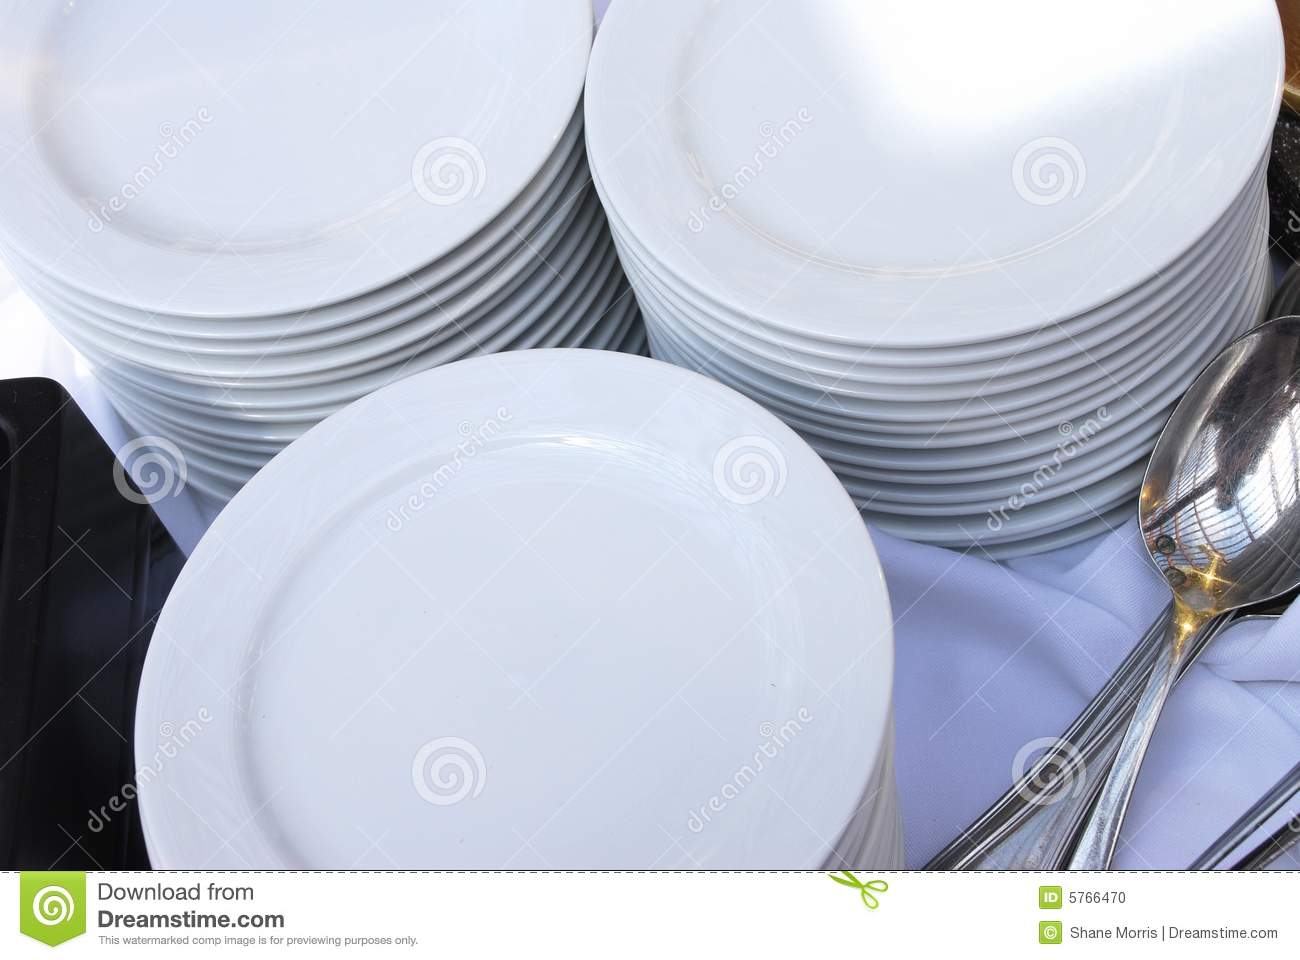 Stacks Of Catering Plates With Spoons Stock Photo - Image of food cloth 5766470 & Stacks Of Catering Plates With Spoons Stock Photo - Image of food ...